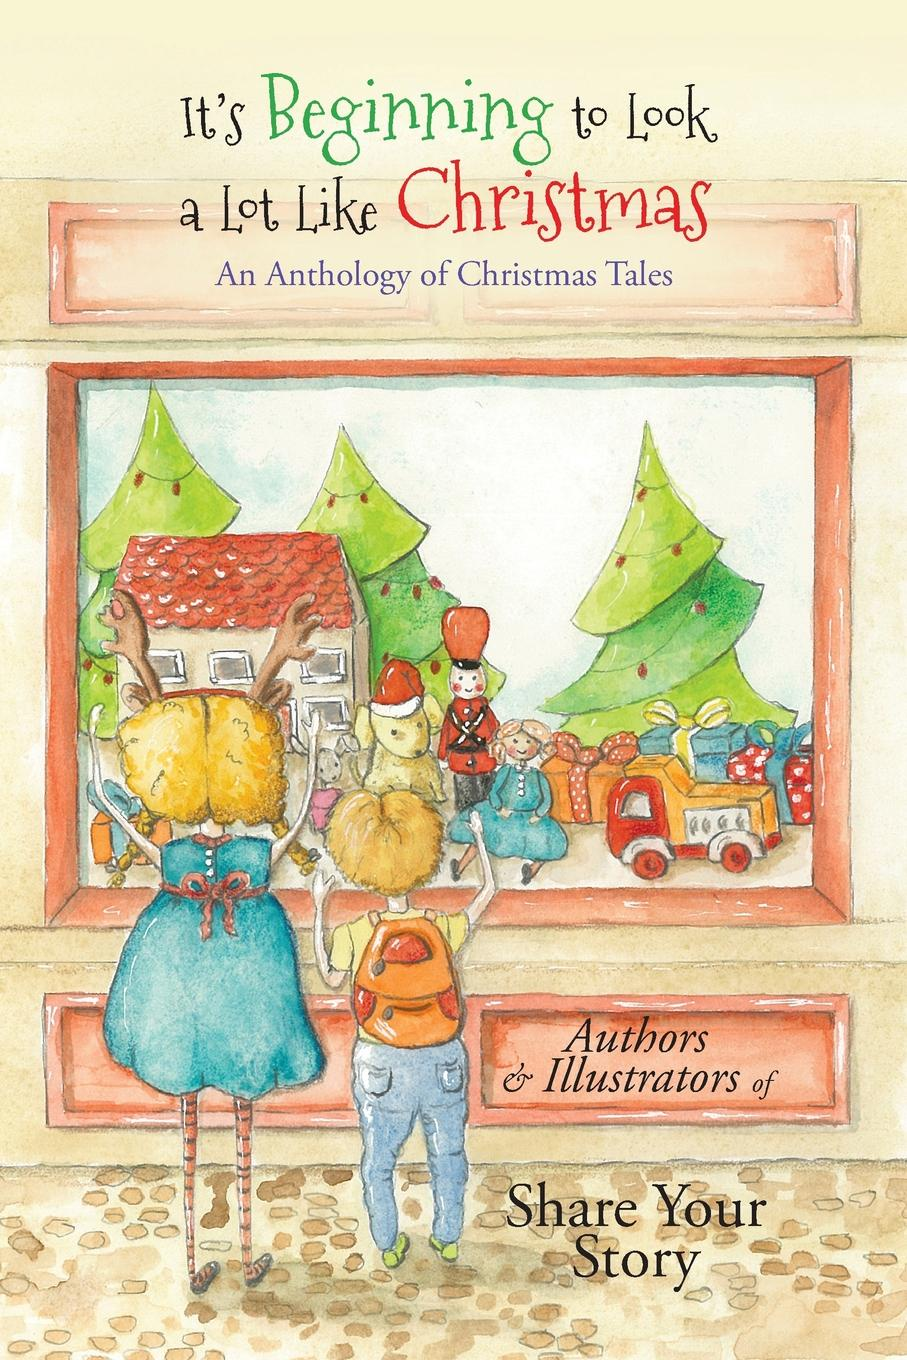 It.s Beginning to Look a Lot Like Christmas. An Anthology of Christmas Tales